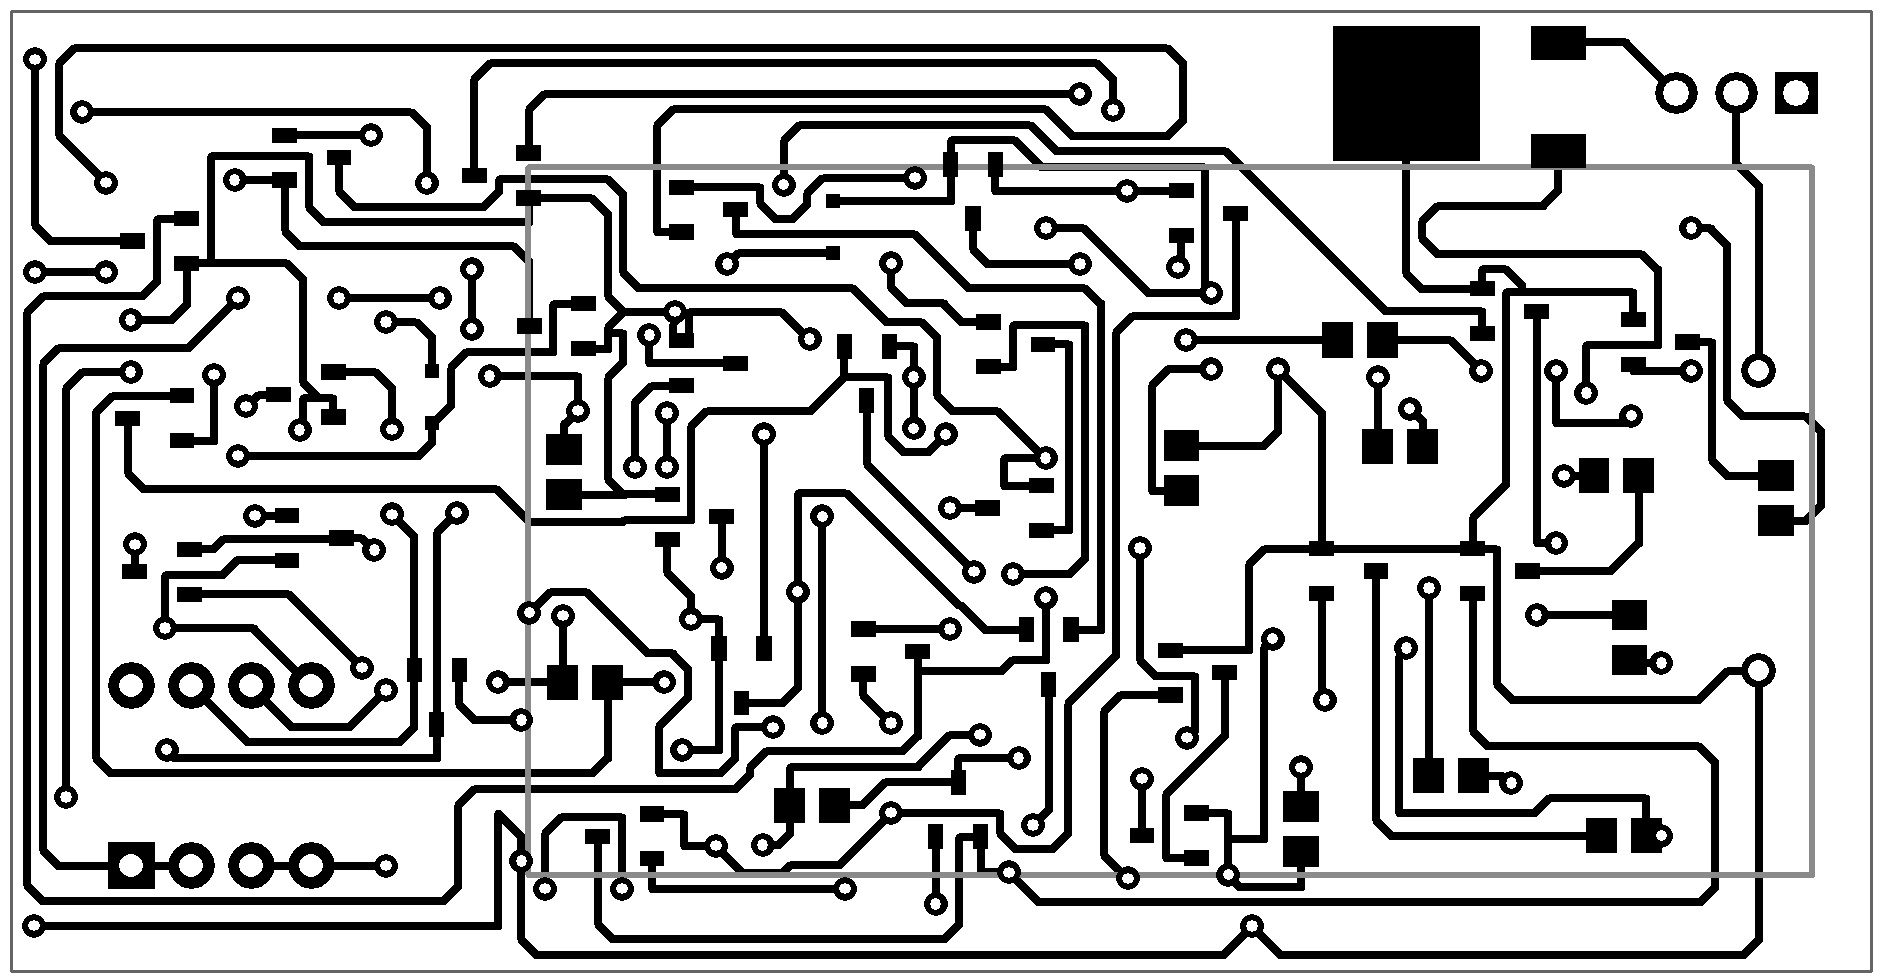 Discrete Binary To 7 Segment Display Clock Circuit Diagram Bottom Layer